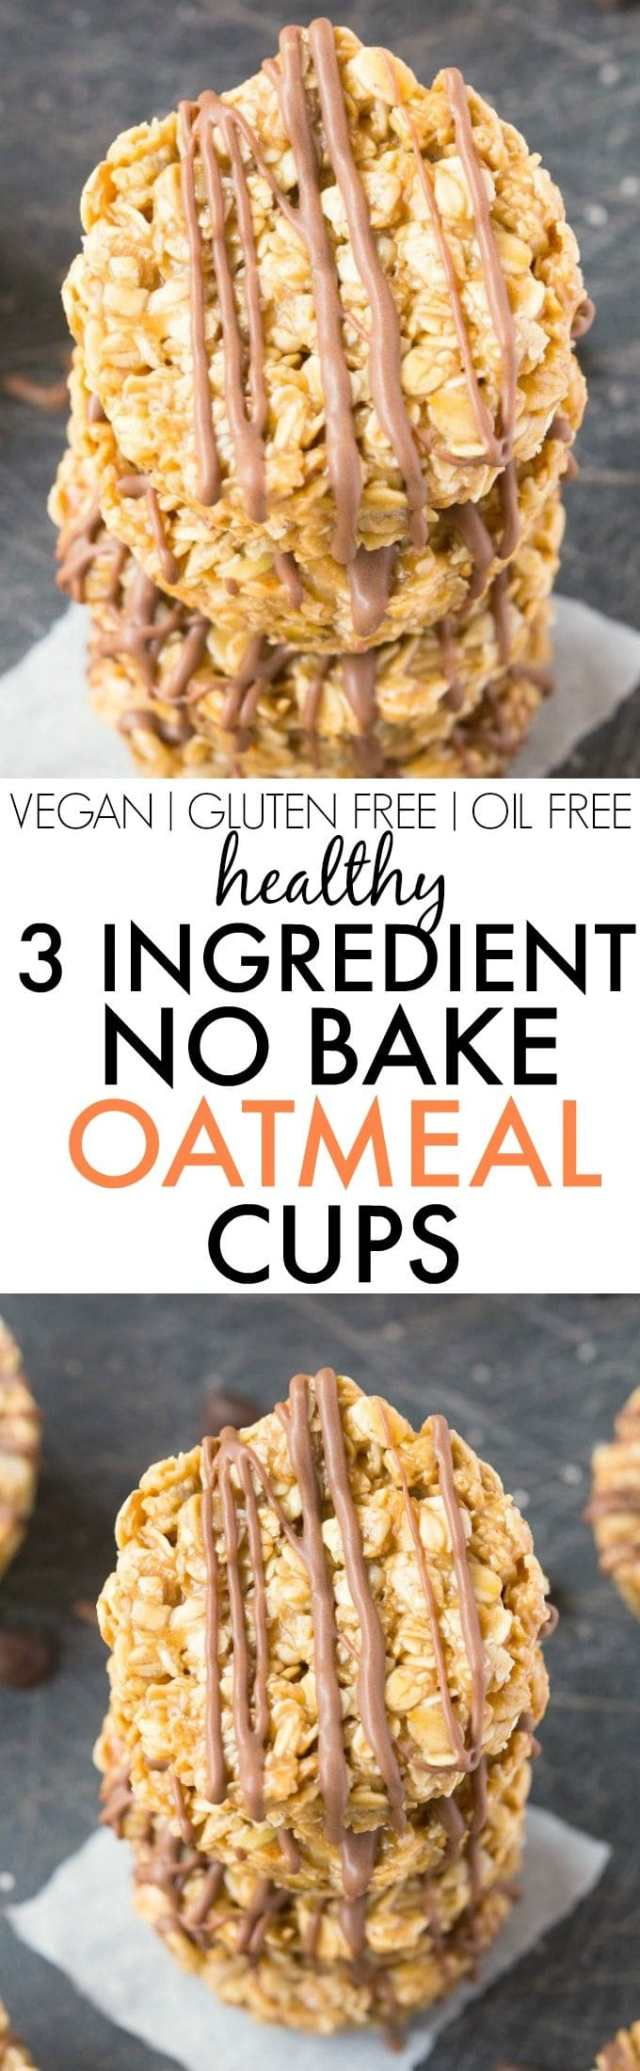 Healthy 3 Ingredient No Bake Oatmeal Cups- Quick, easy and delicious no bake oatmeal bars made into cups and PERFECT for snacks, back to school, lunch box or even dessert! Ready in FIVE minutes FLAT! {vegan, gluten free, dairy free recipe}- thebigmansworld.com